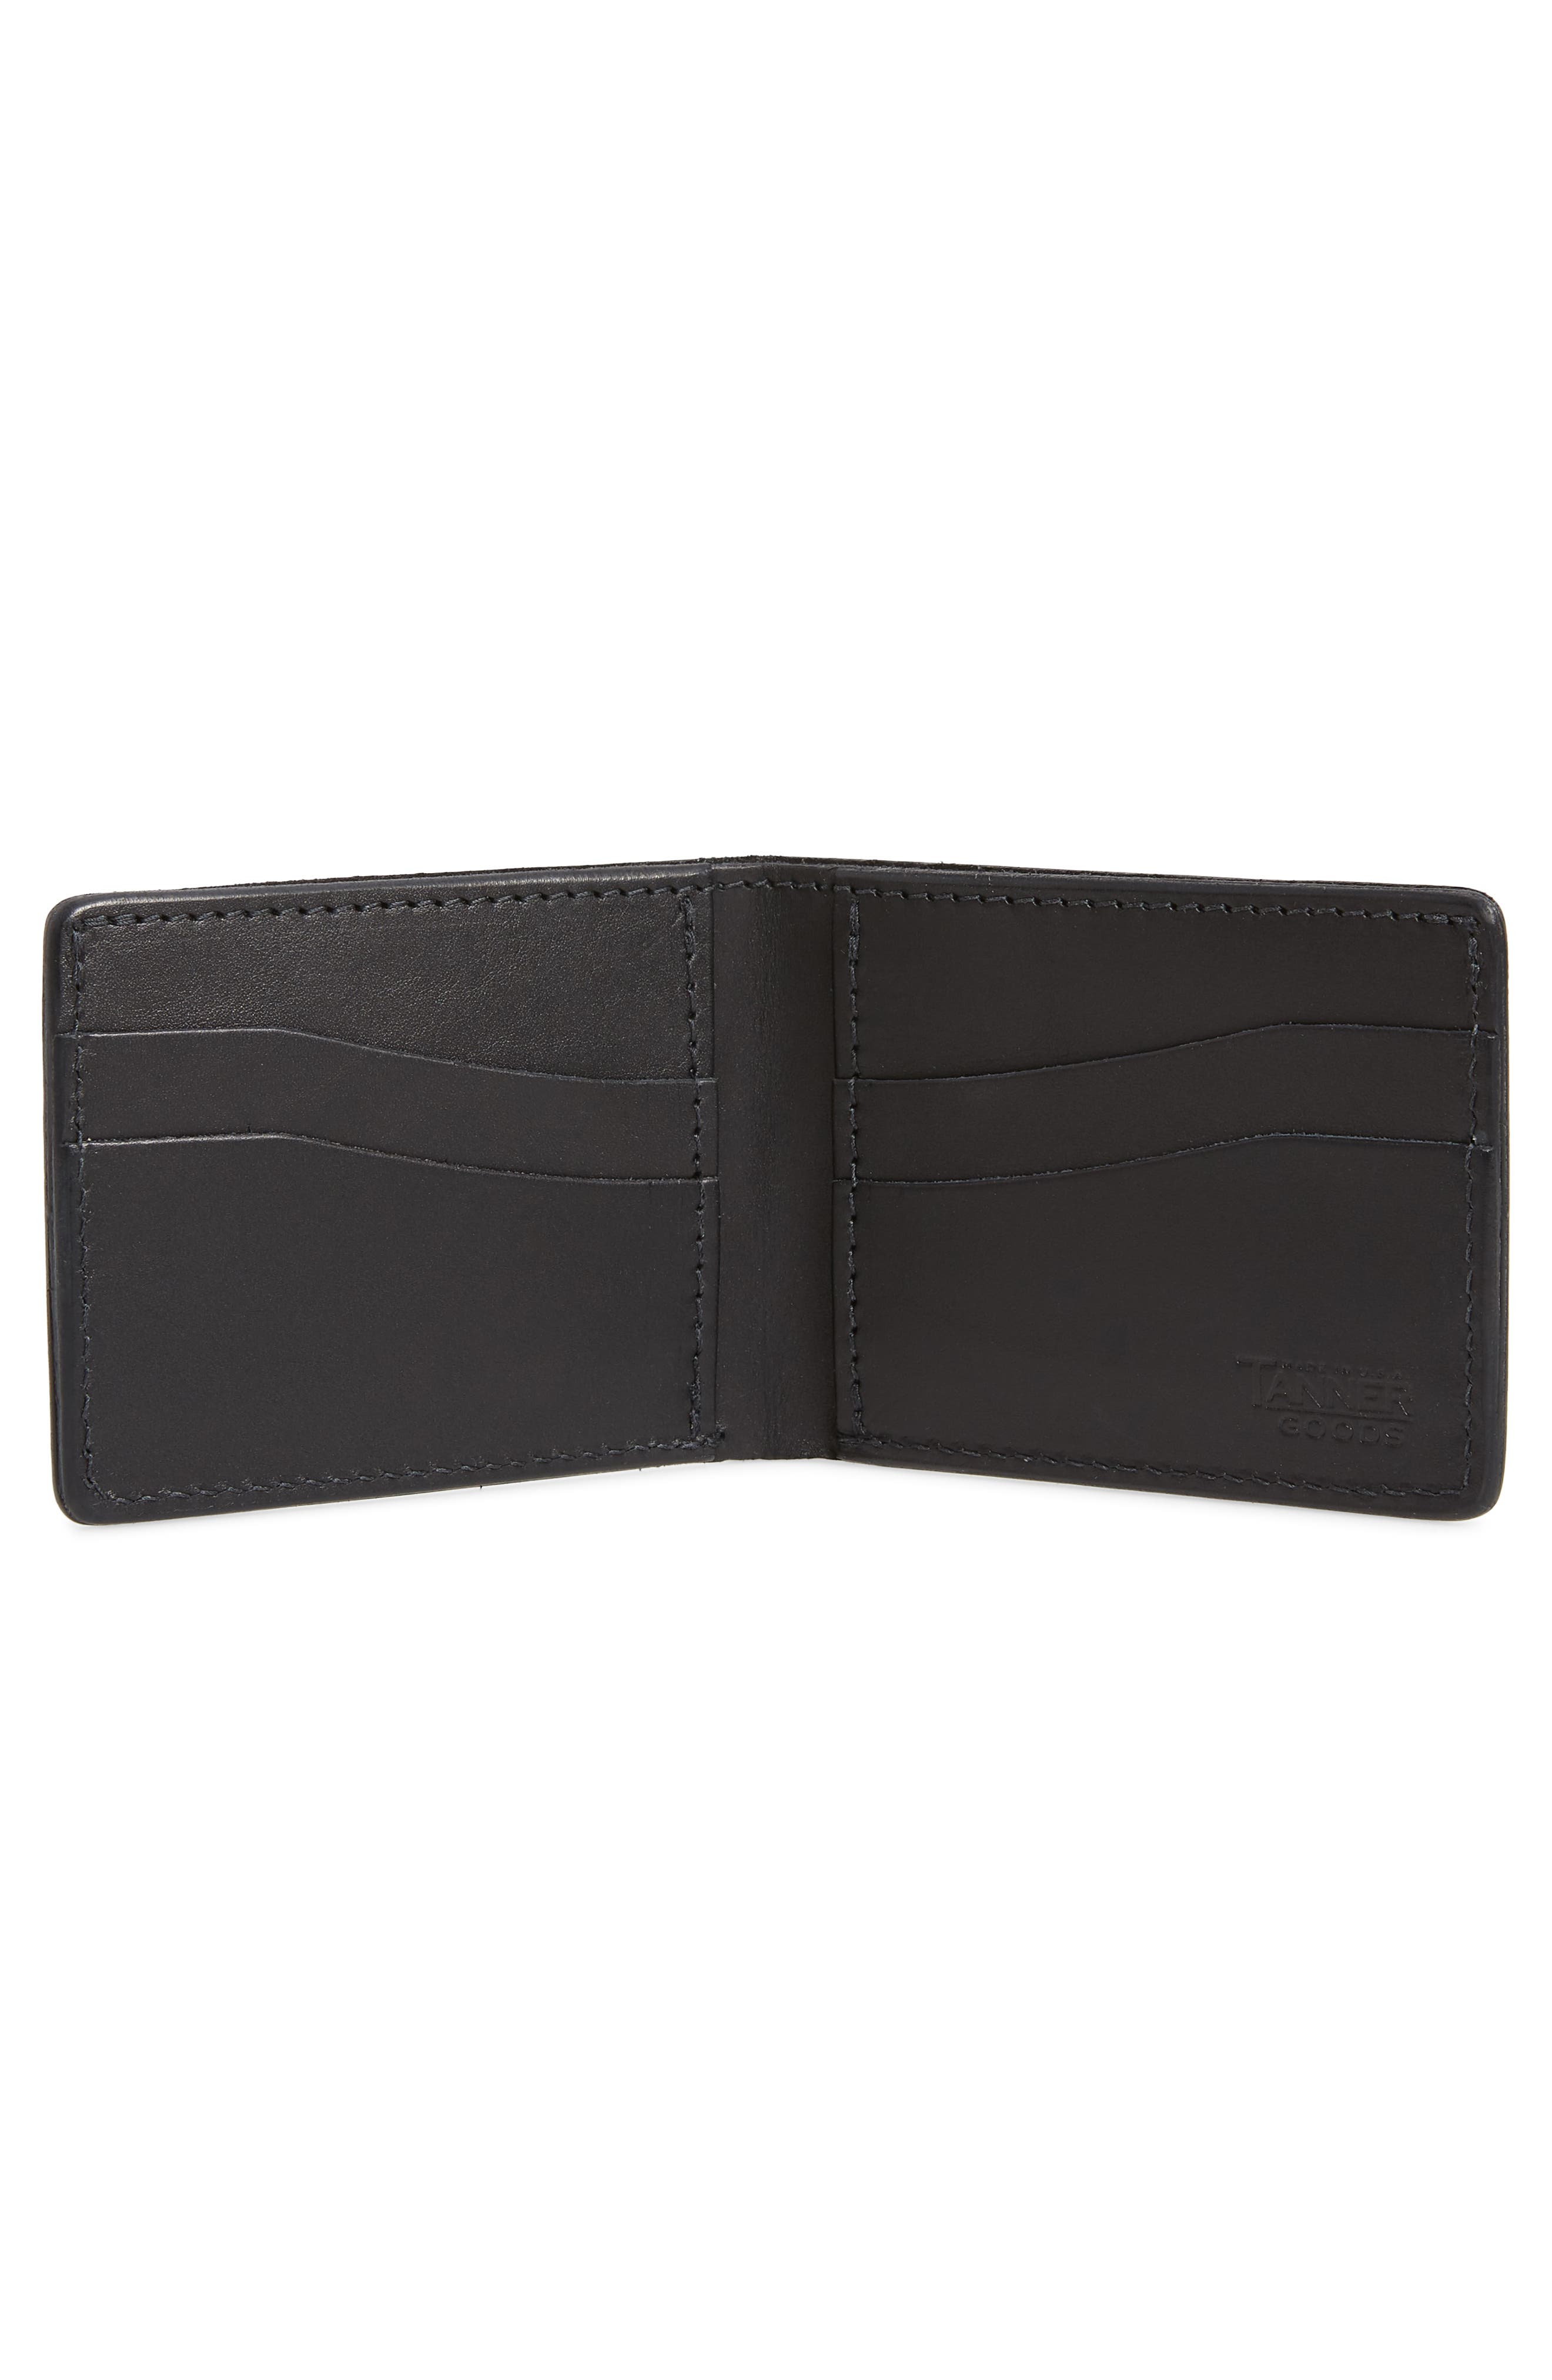 Utility Leather Bifold Wallet,                             Alternate thumbnail 2, color,                             BLACK